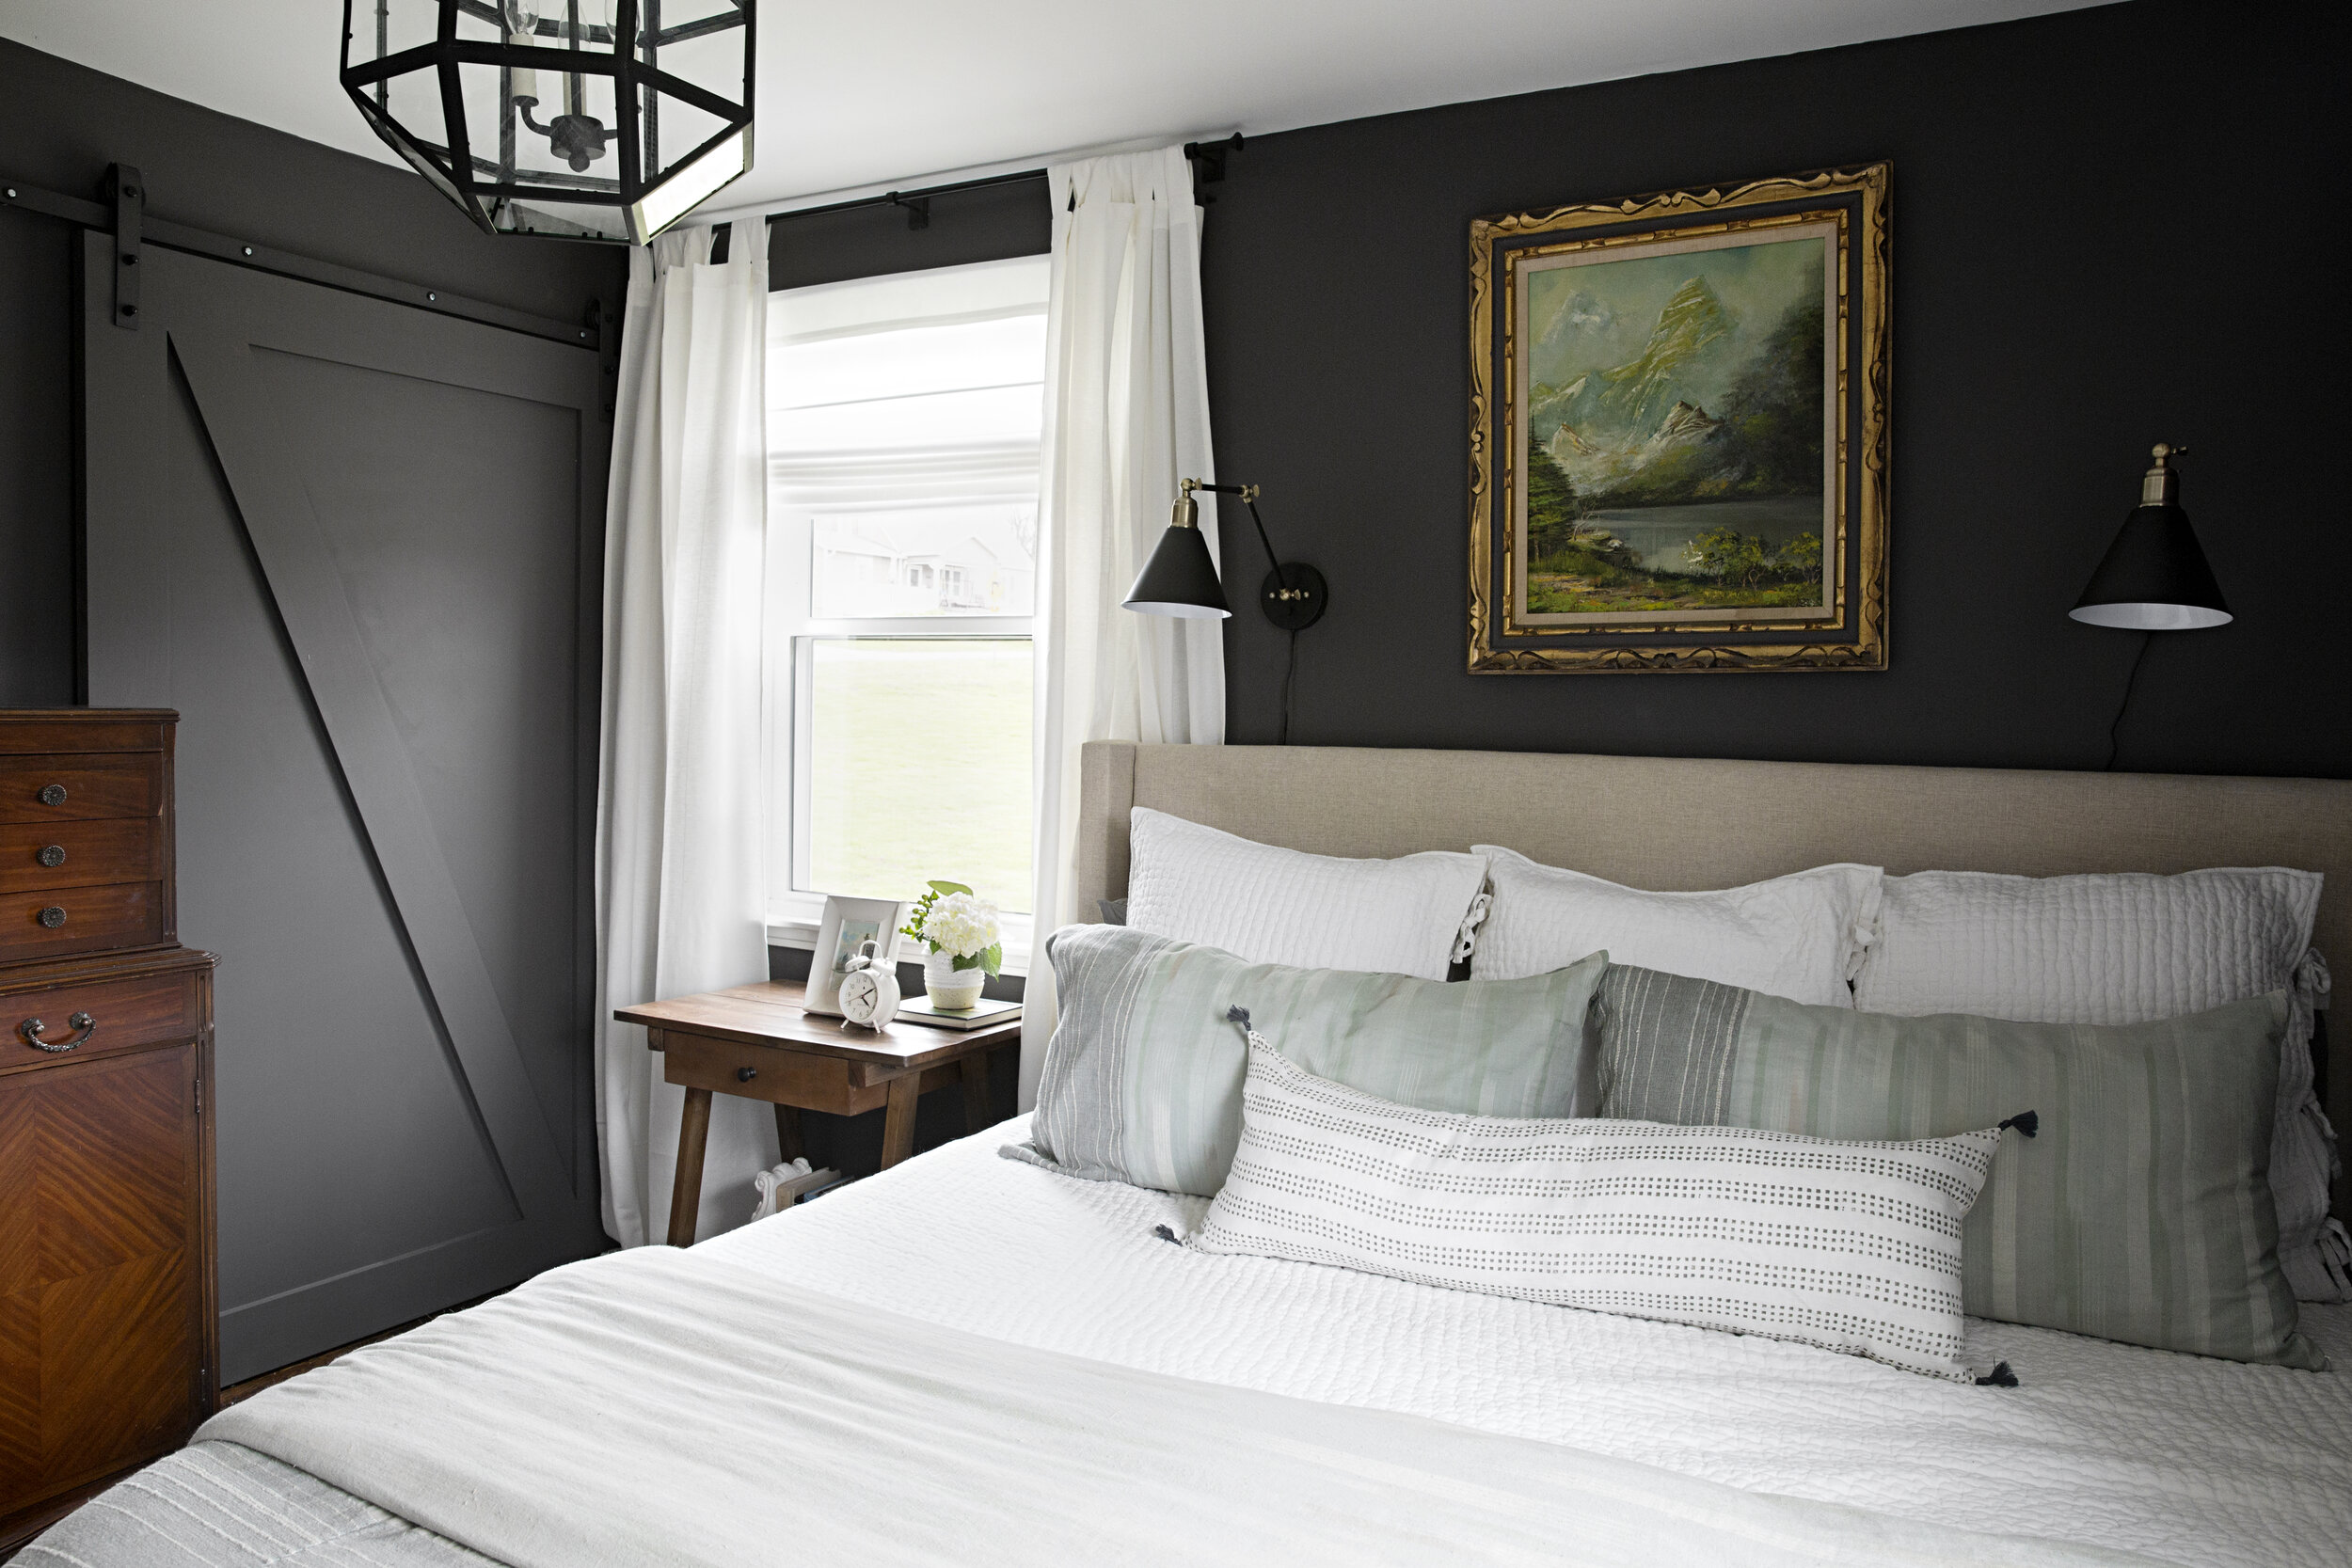 Moody Master Bedroom Renovation - Peach and Pine Home